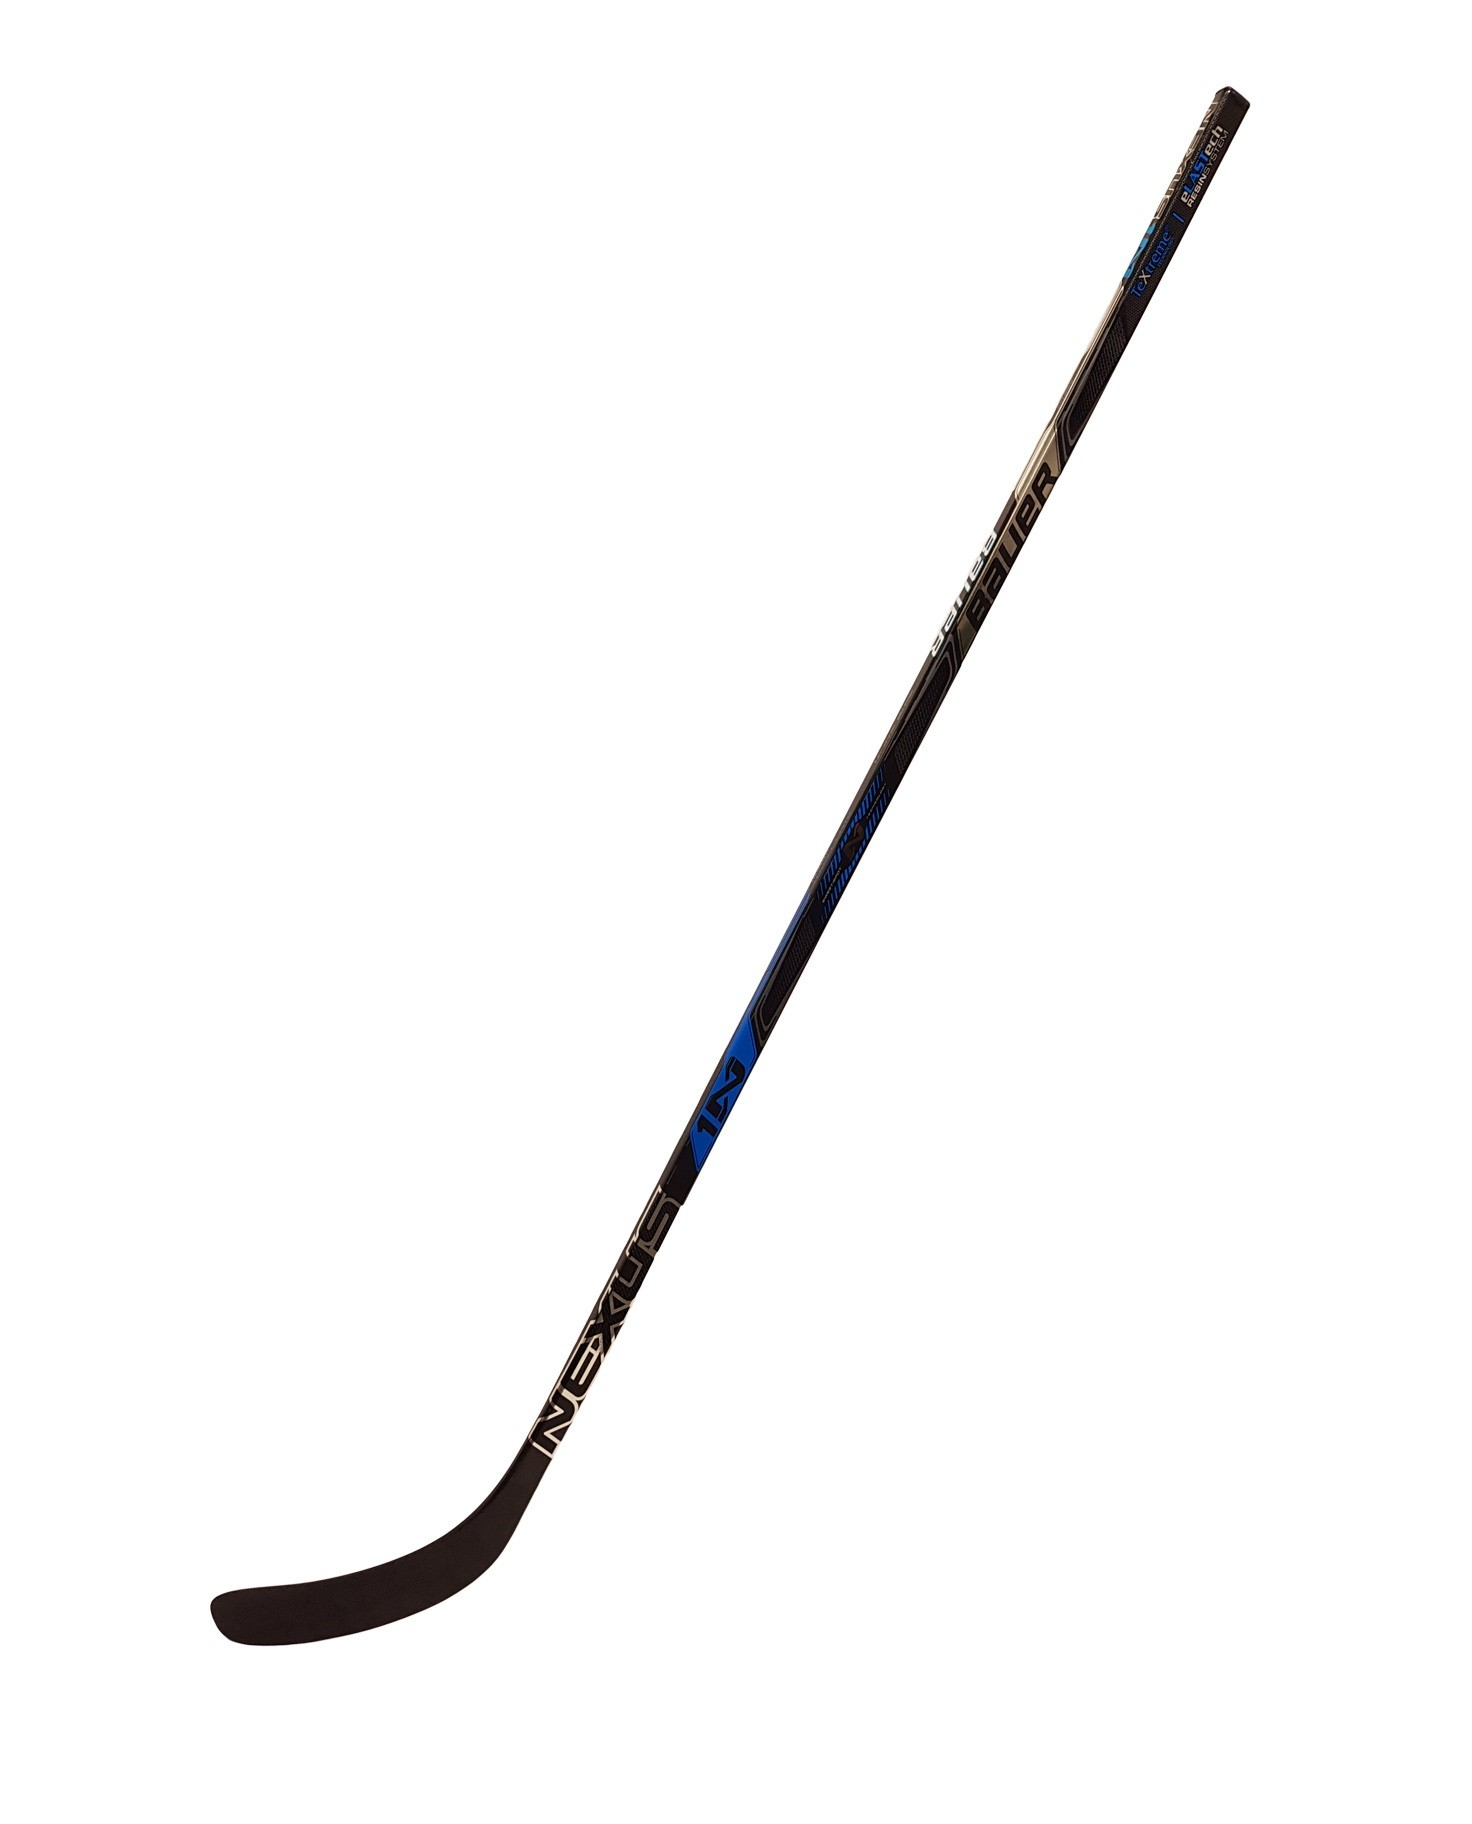 BAUER Nexus 1N S16 Senior Composite Hockey Stick